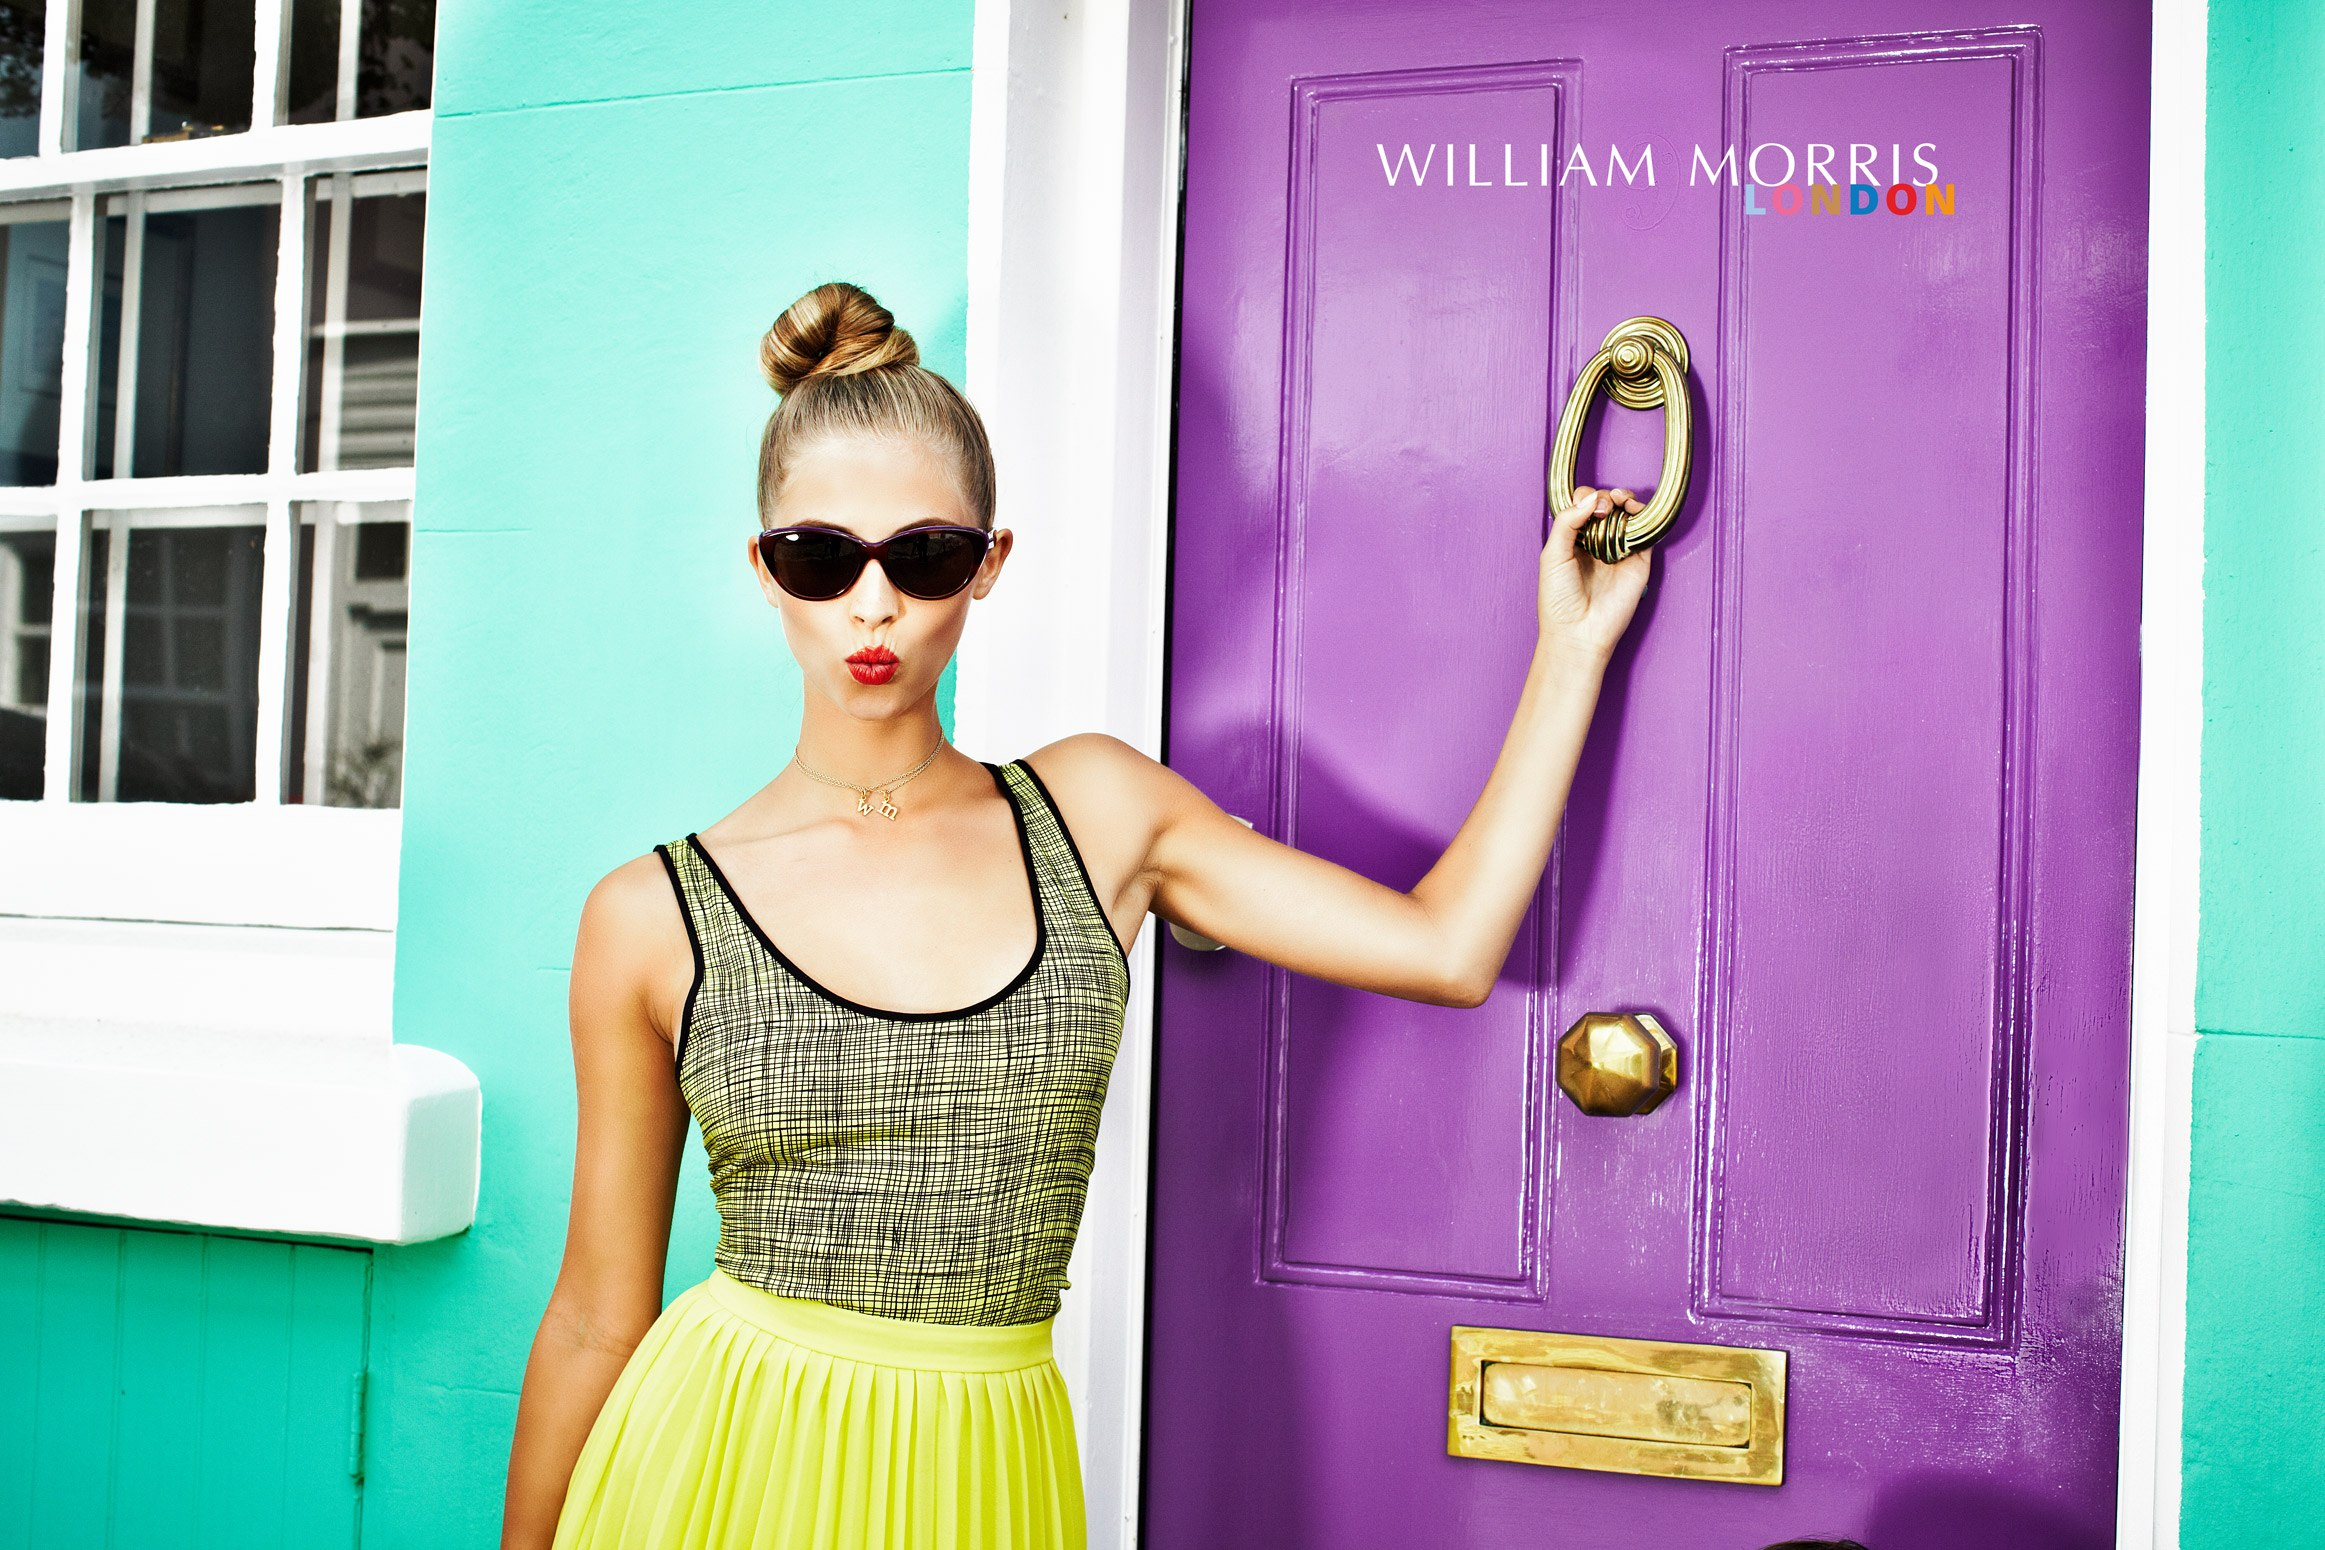 william-morris-ruth-rose-fashion-glasses-accessories-london-hermione-corfield-london-tourist-notting-hill-chelsea-fashion-boy-girl-colour-house-1